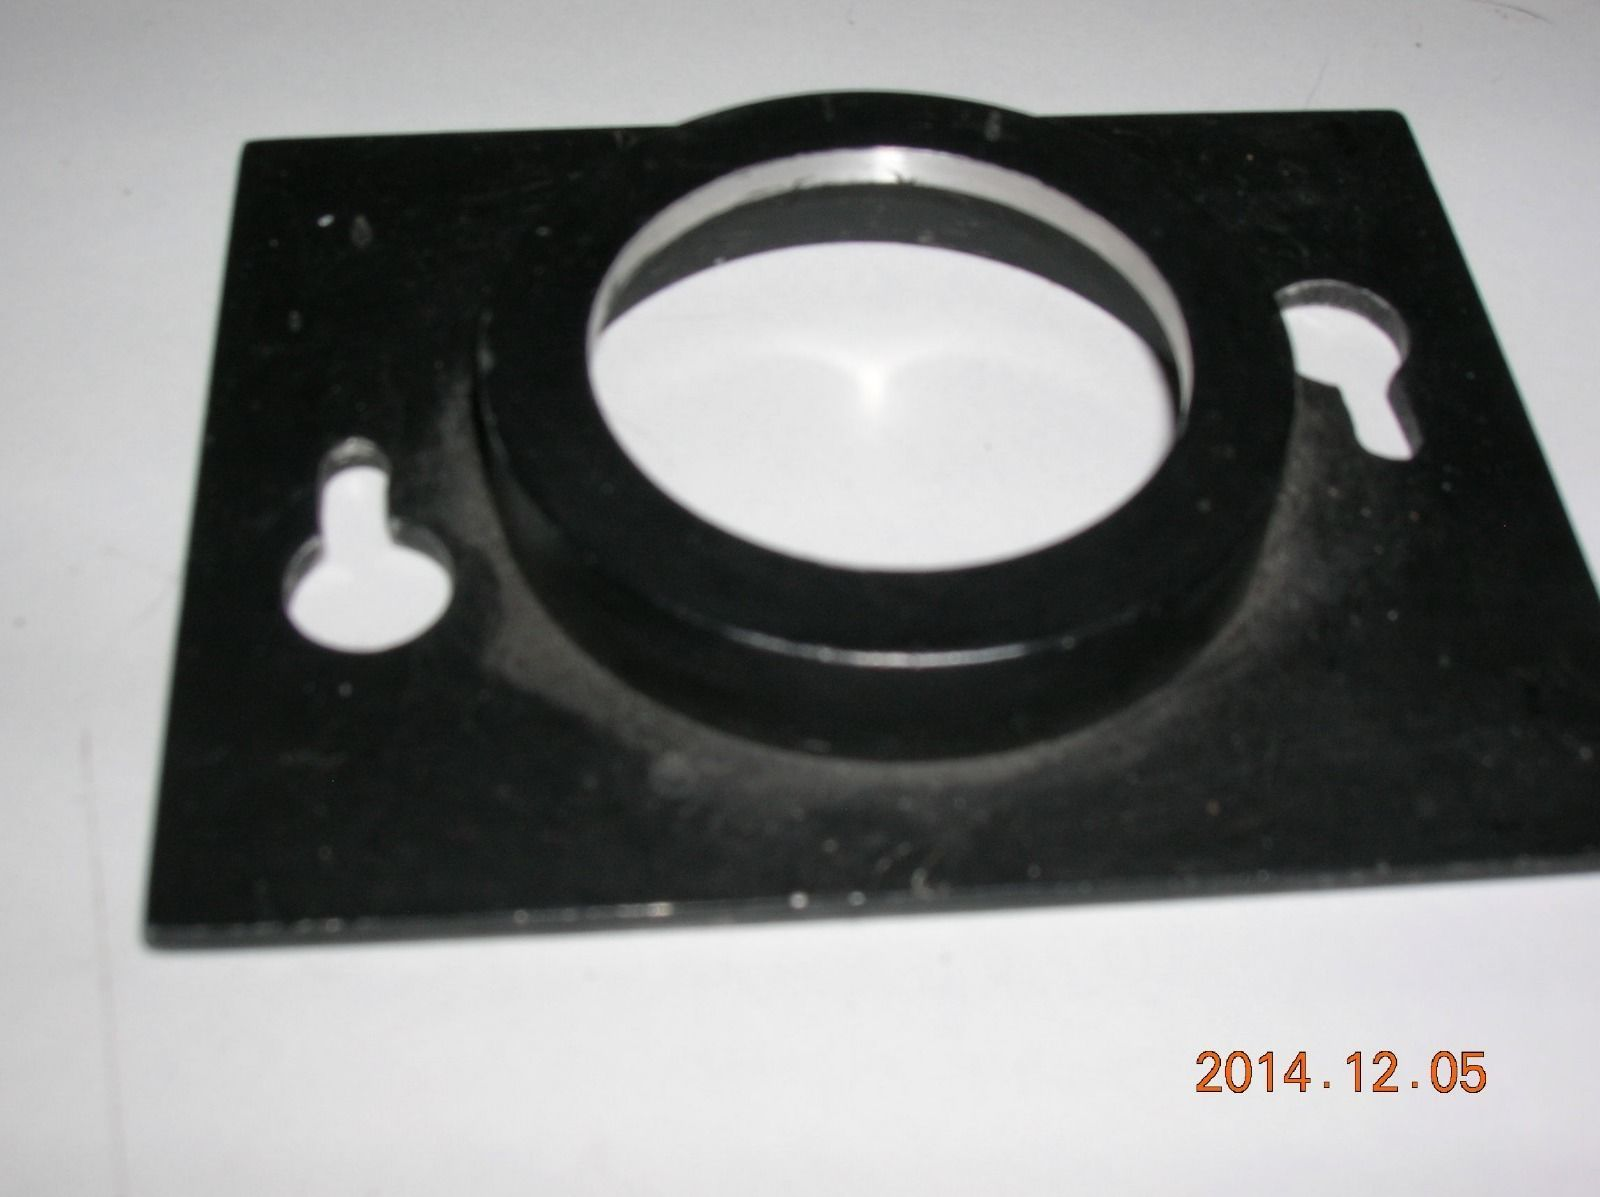 rectangular recessed/extender lensboard for unknown enlarger for 32.5mm lenses